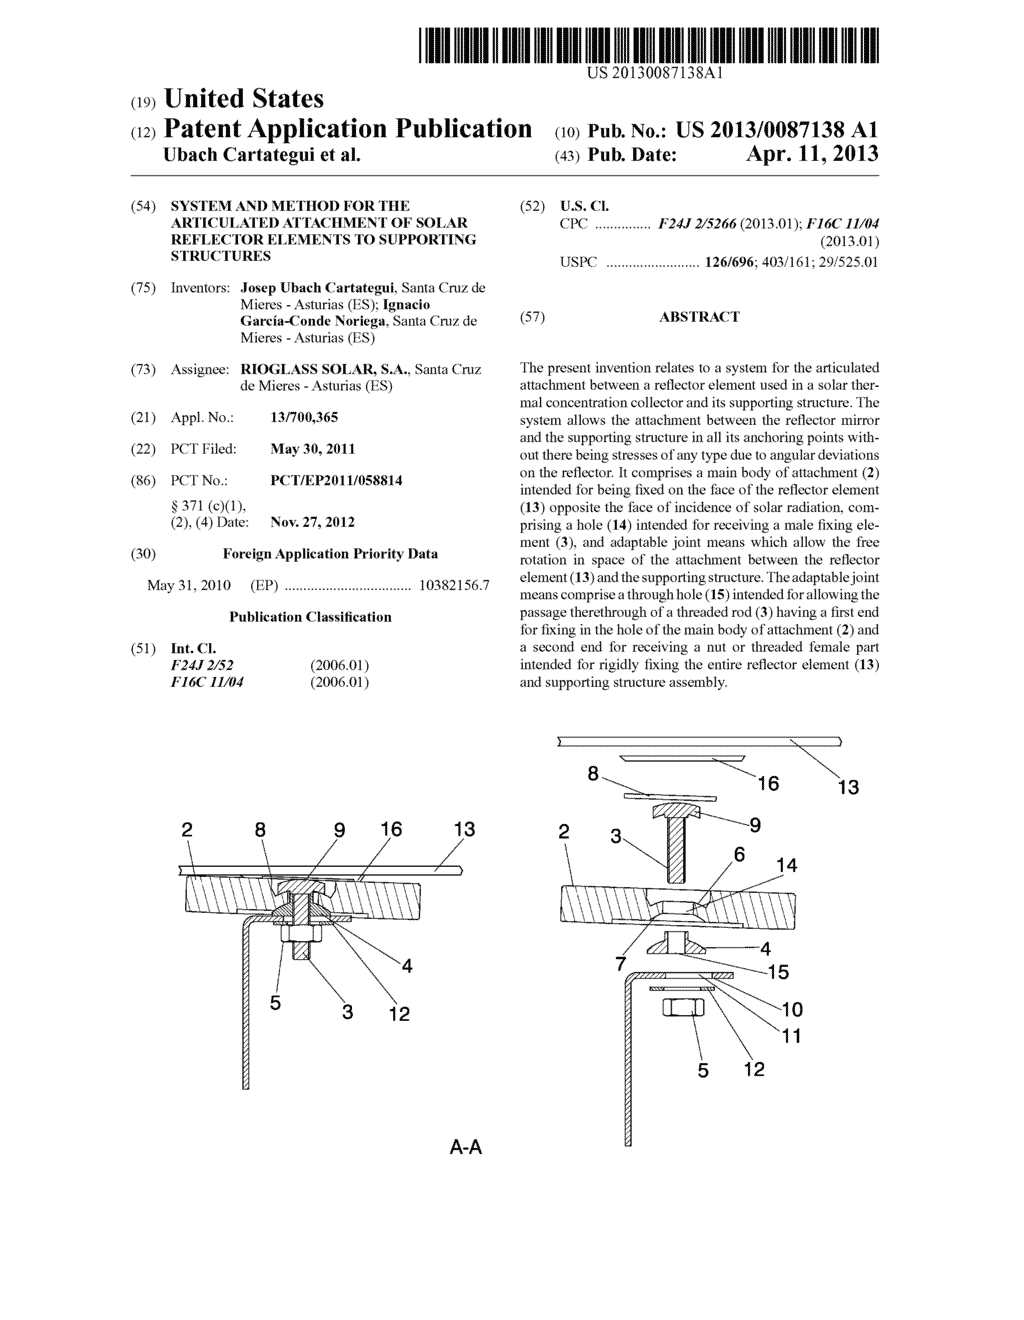 SYSTEM AND METHOD FOR THE ARTICULATED ATTACHMENT OF SOLAR REFLECTOR     ELEMENTS TO SUPPORTING STRUCTURES - diagram, schematic, and image 01